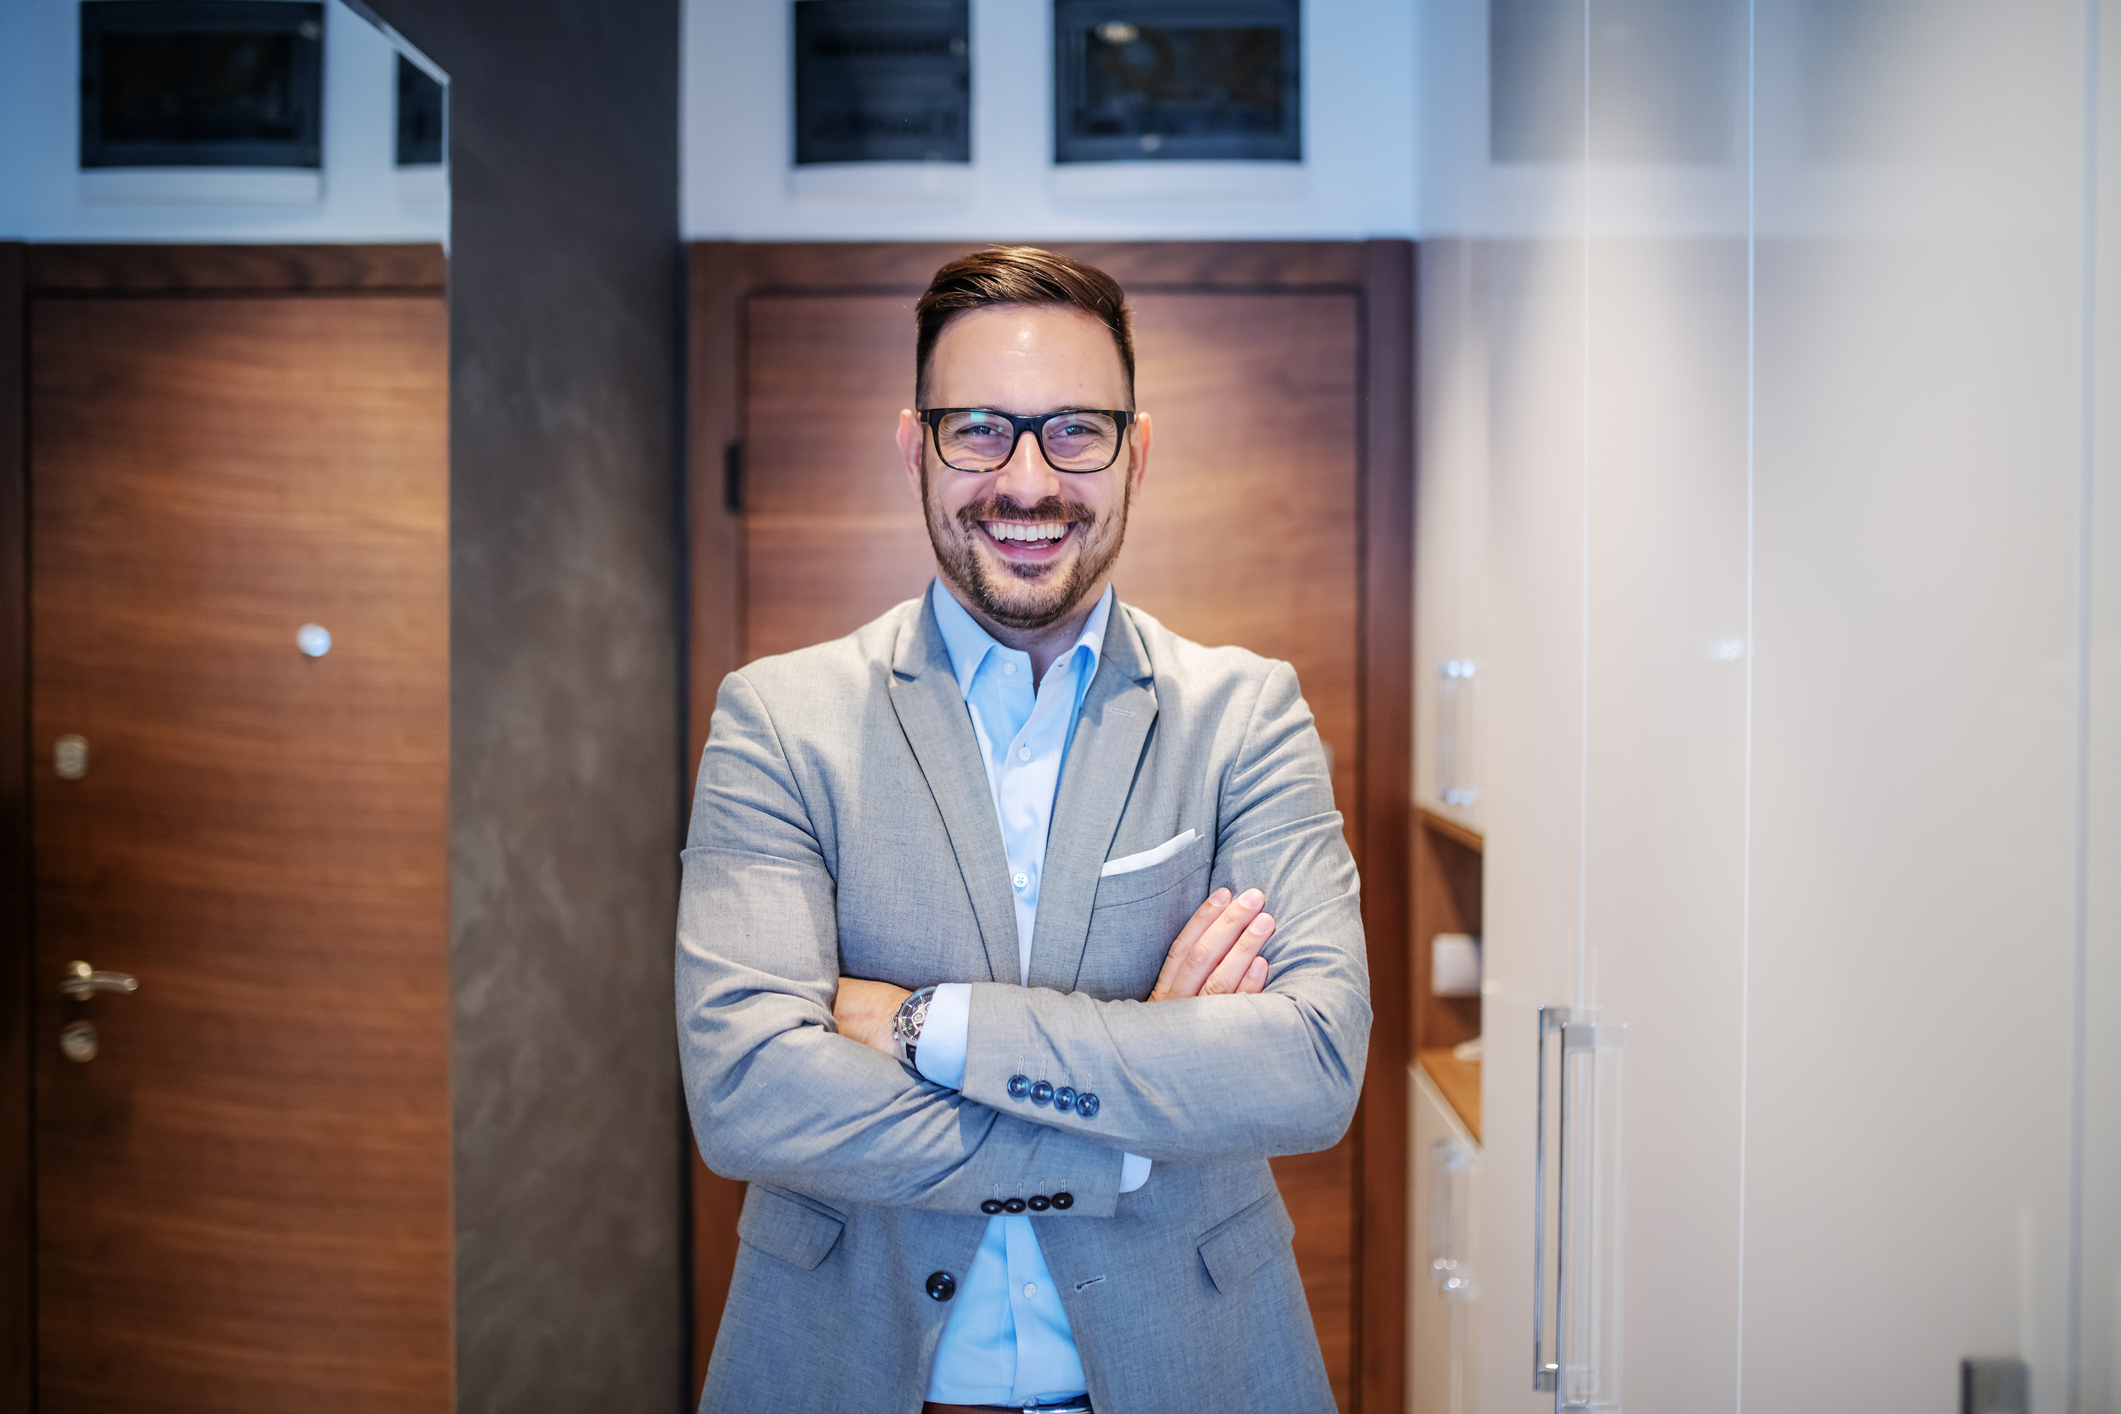 Stock photo of man in business suit, smiling